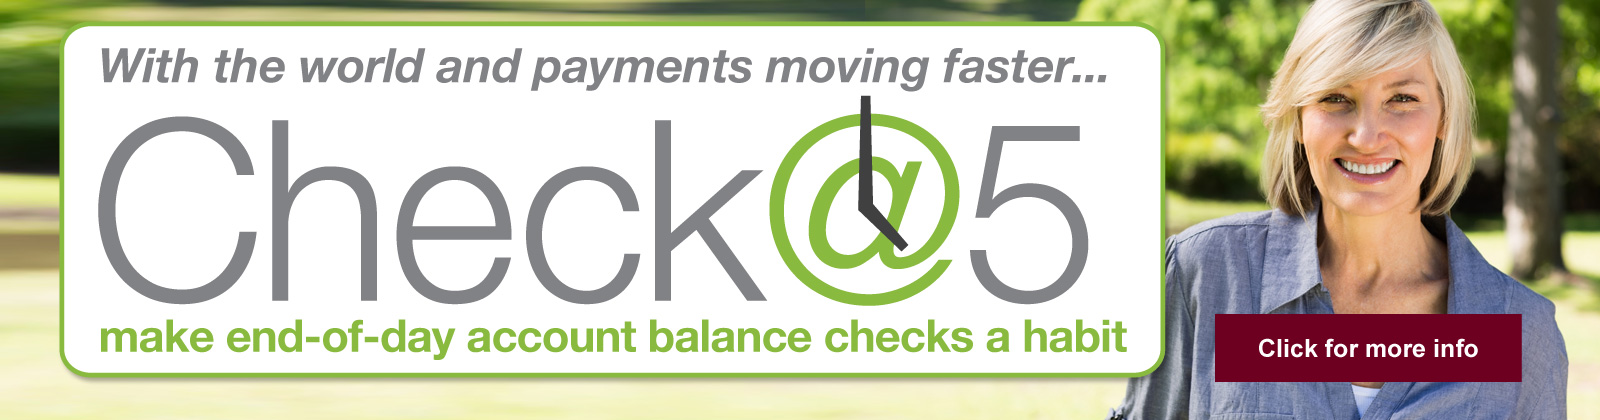 With the world and payments moving faster, make end-of-day account balance checks a habit